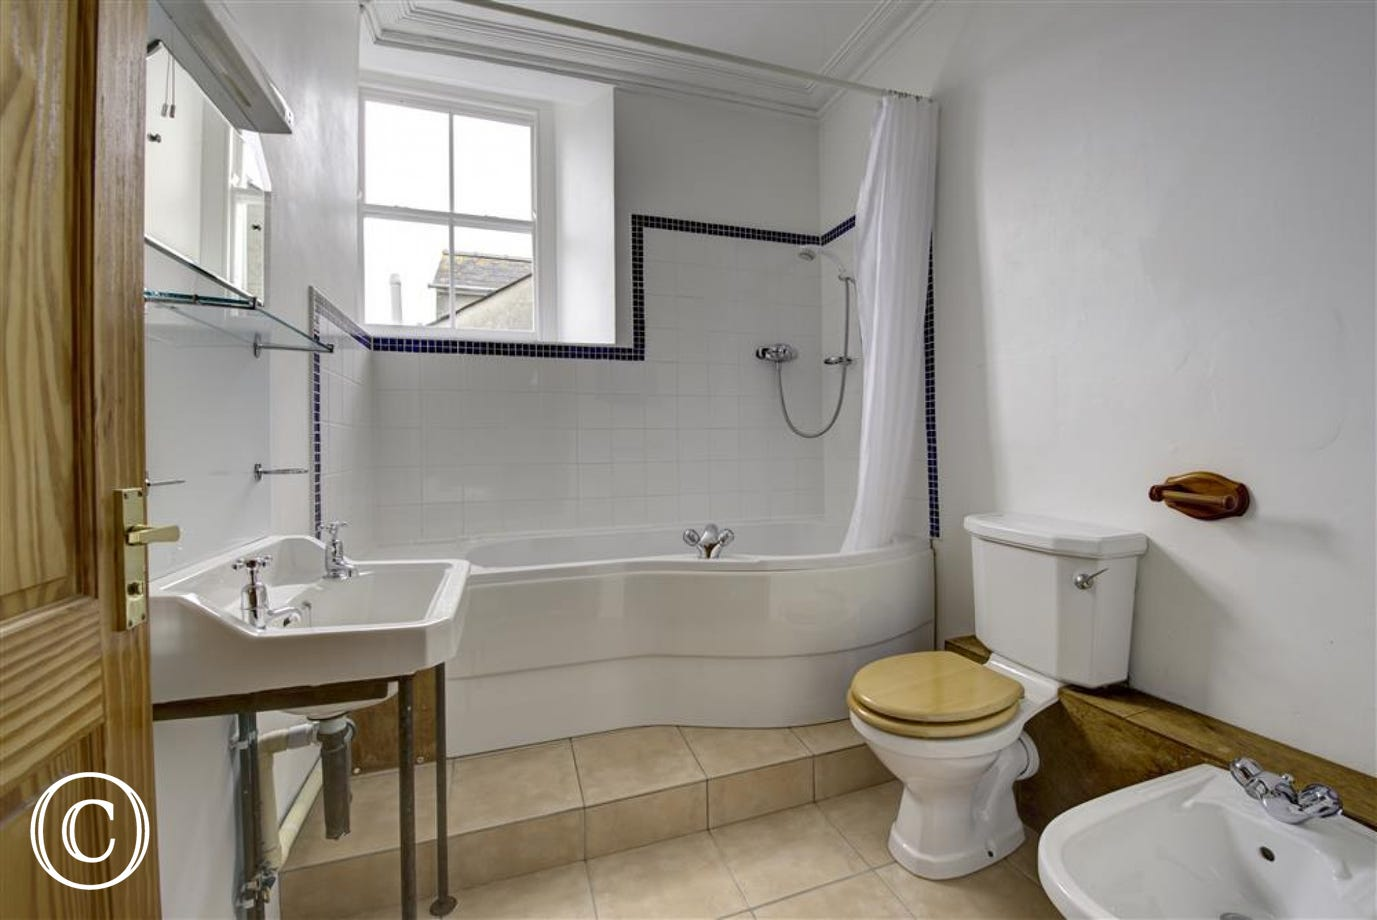 Dressing room leads to ensuite bathroom, with shower over